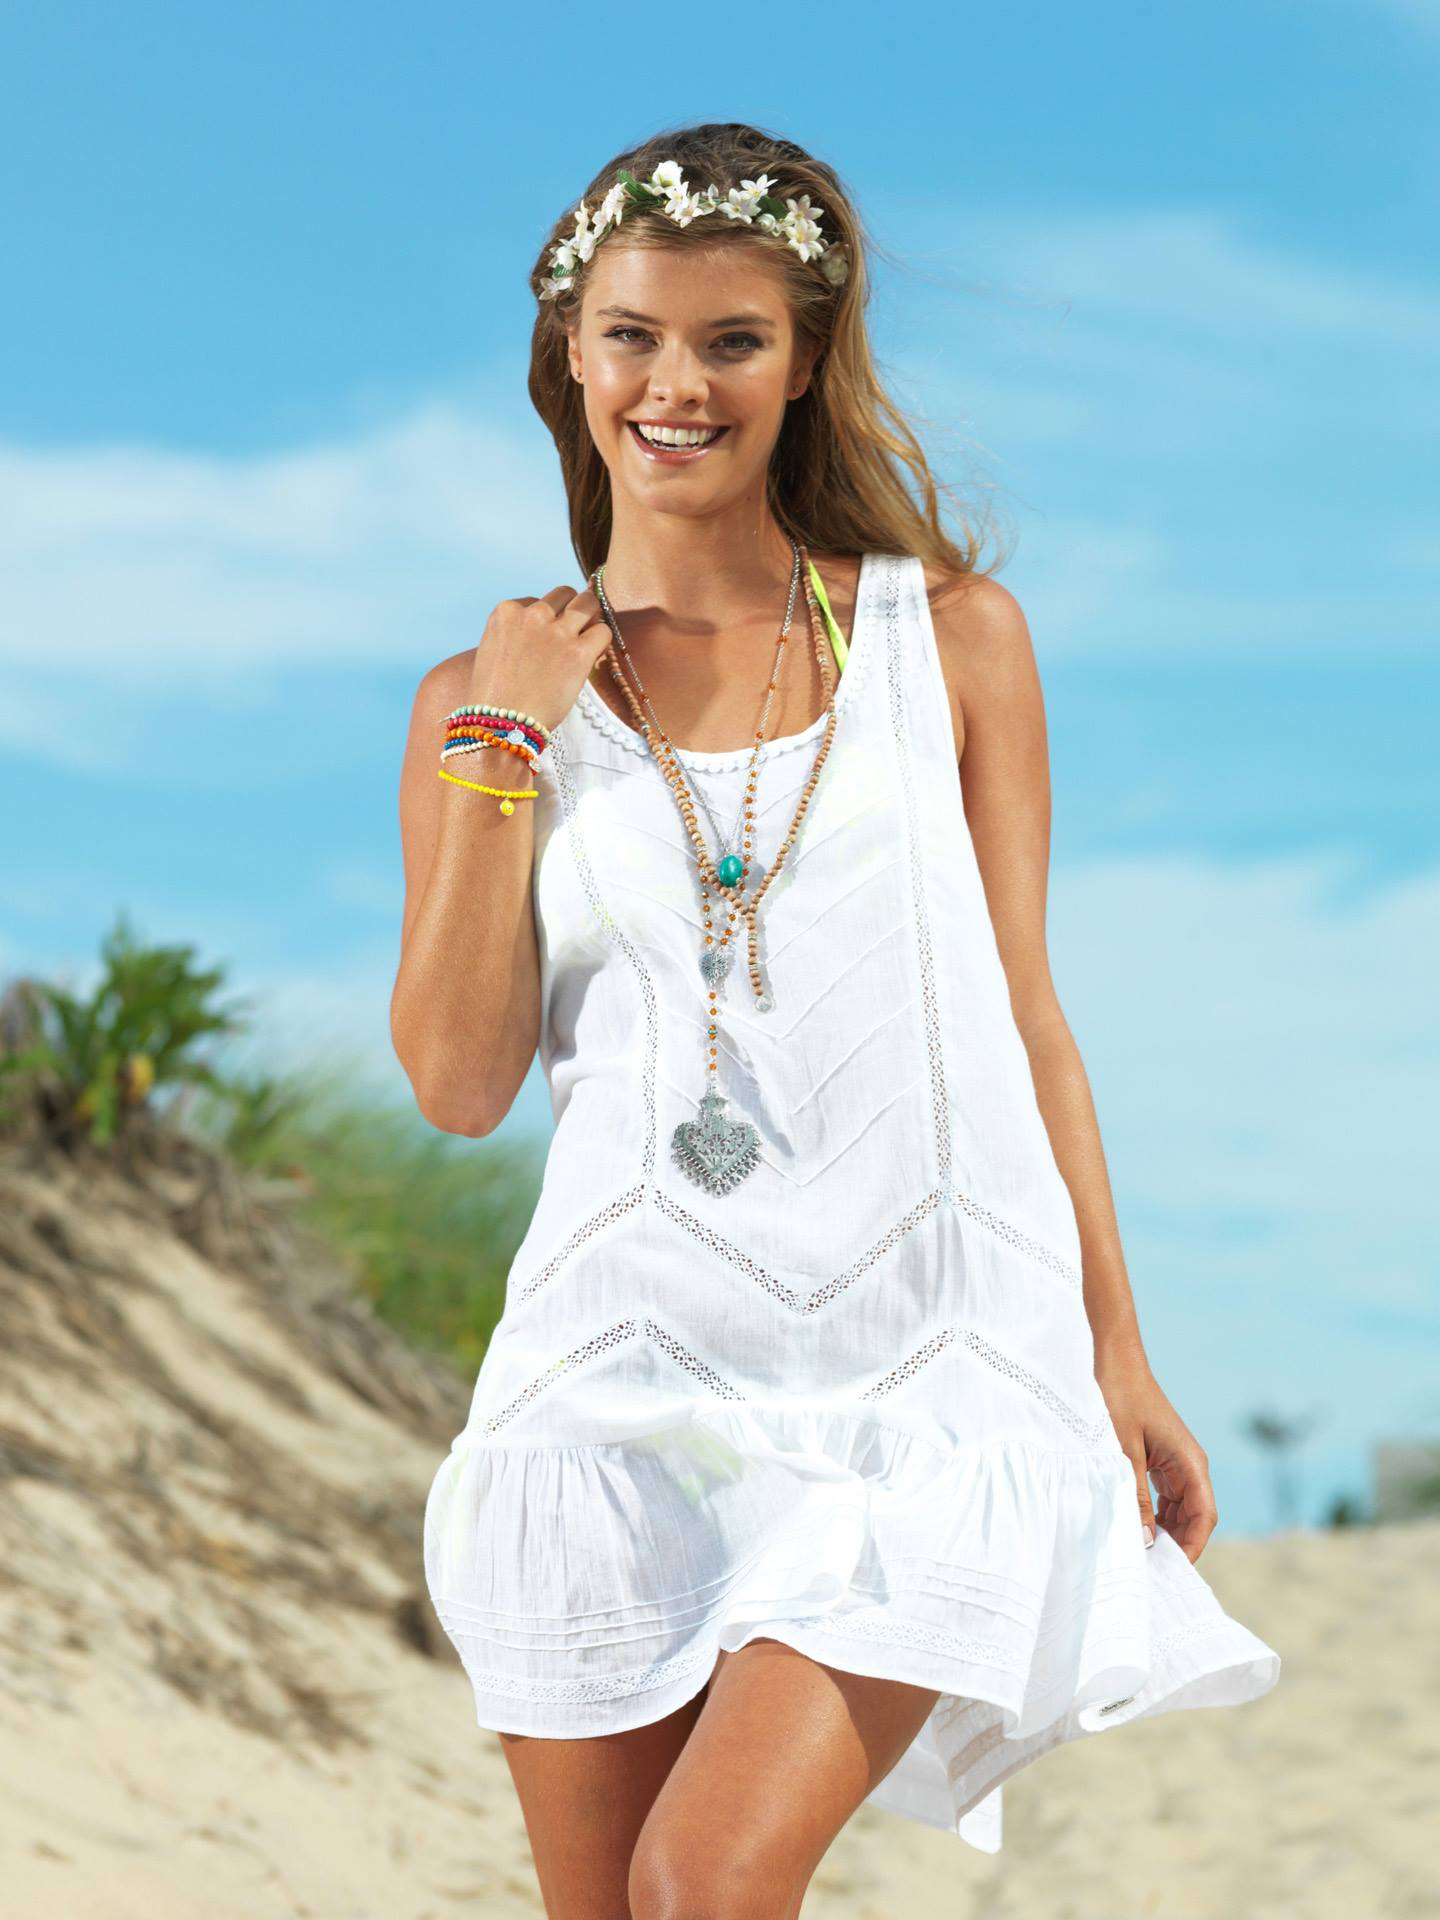 nina-agdal-banana-moon-spring-summer-2014-set-2-02